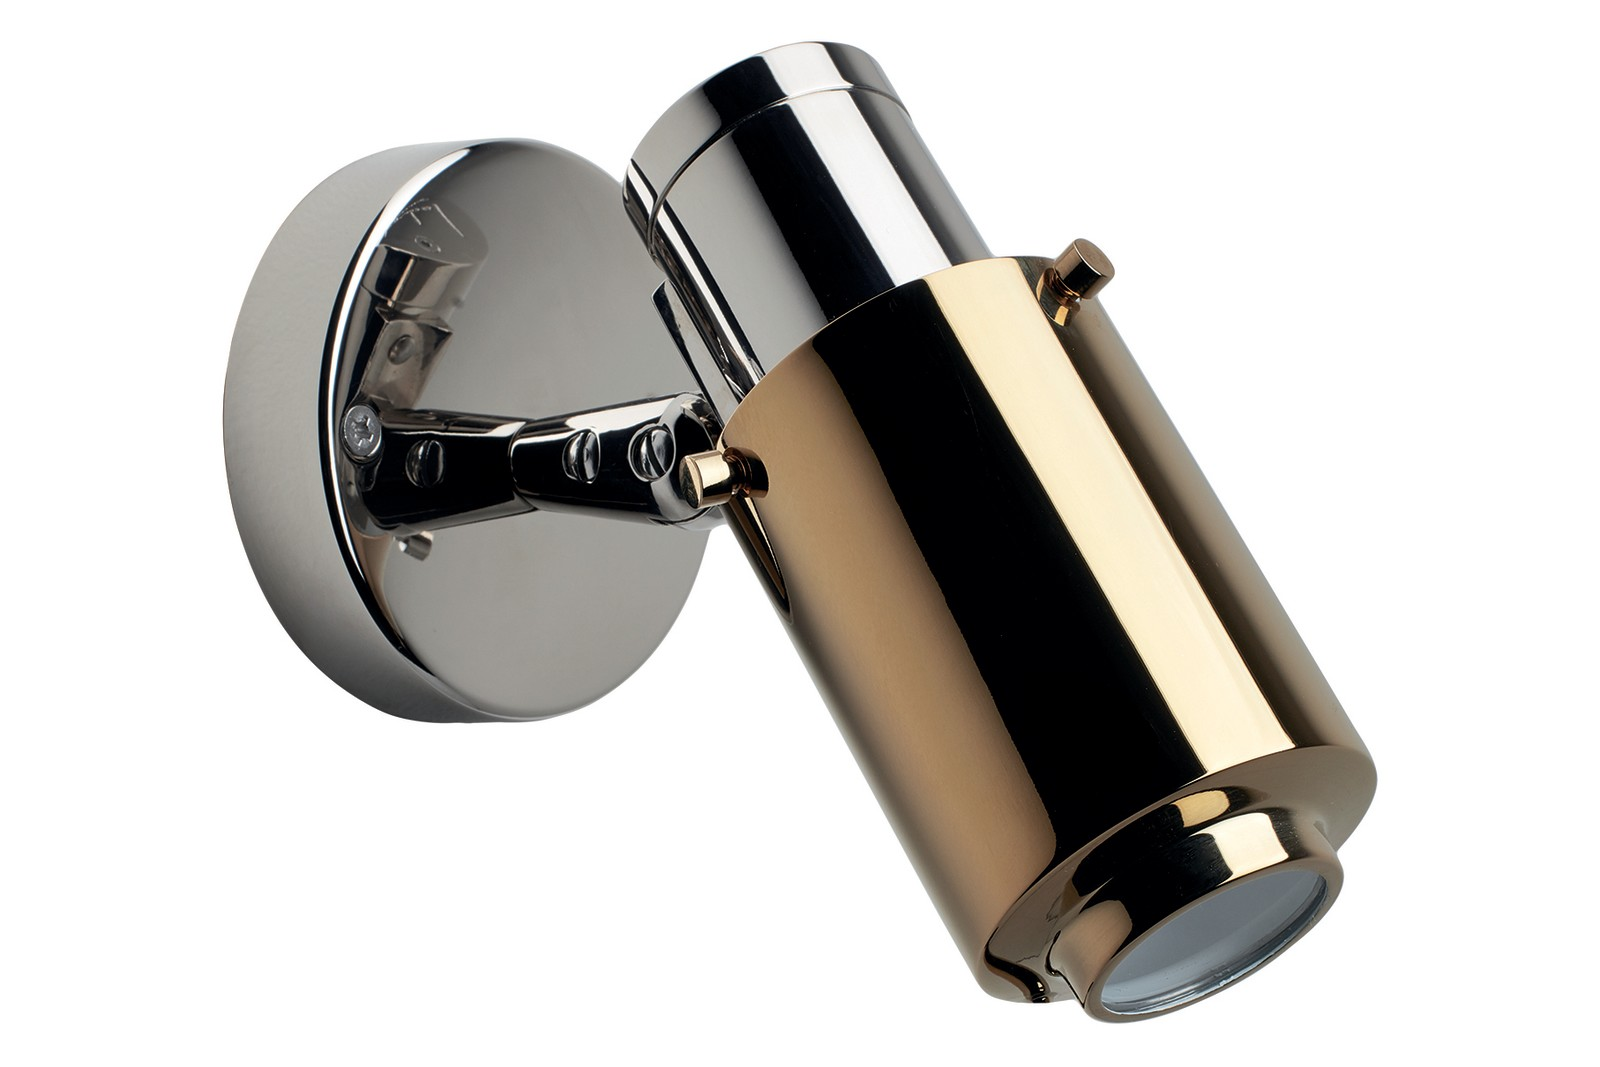 Biny Spot LED Wall Light Polished Nickel Body, Gold Anodized Lens, Without, Without